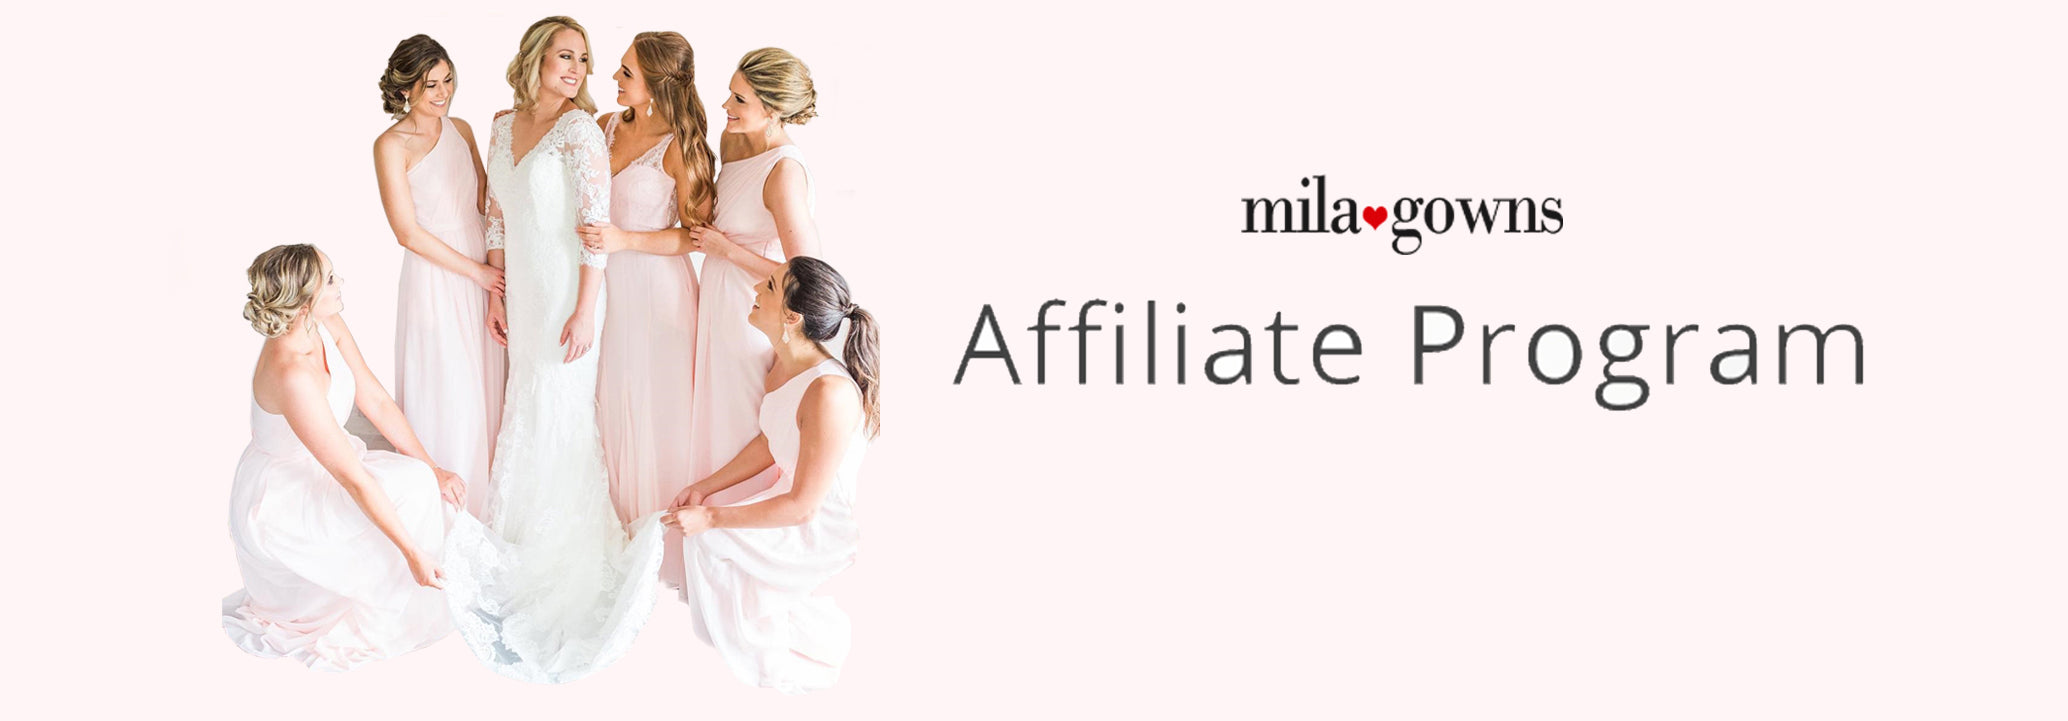 mila gowns affiliate program for bridesmaid dresses and wedding dresses